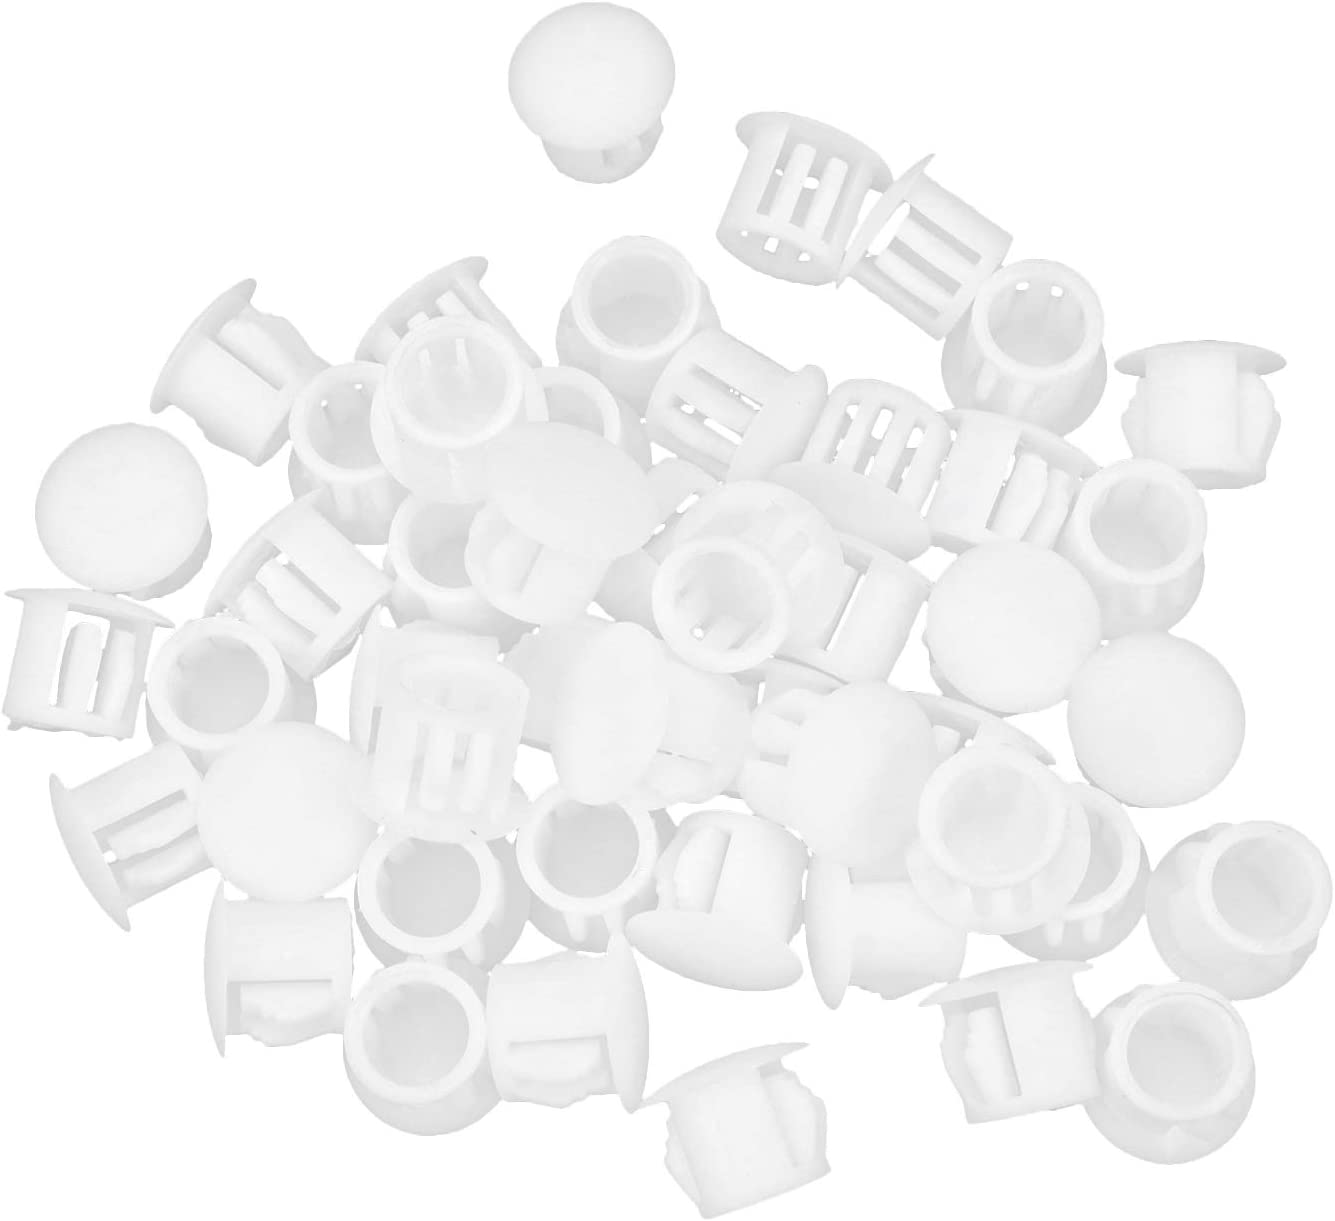 Coshar 50pcs 3/8 Inch Locking Hole Plugs Plastic Panel Hole Cover, Fit for 10mm Holes, White